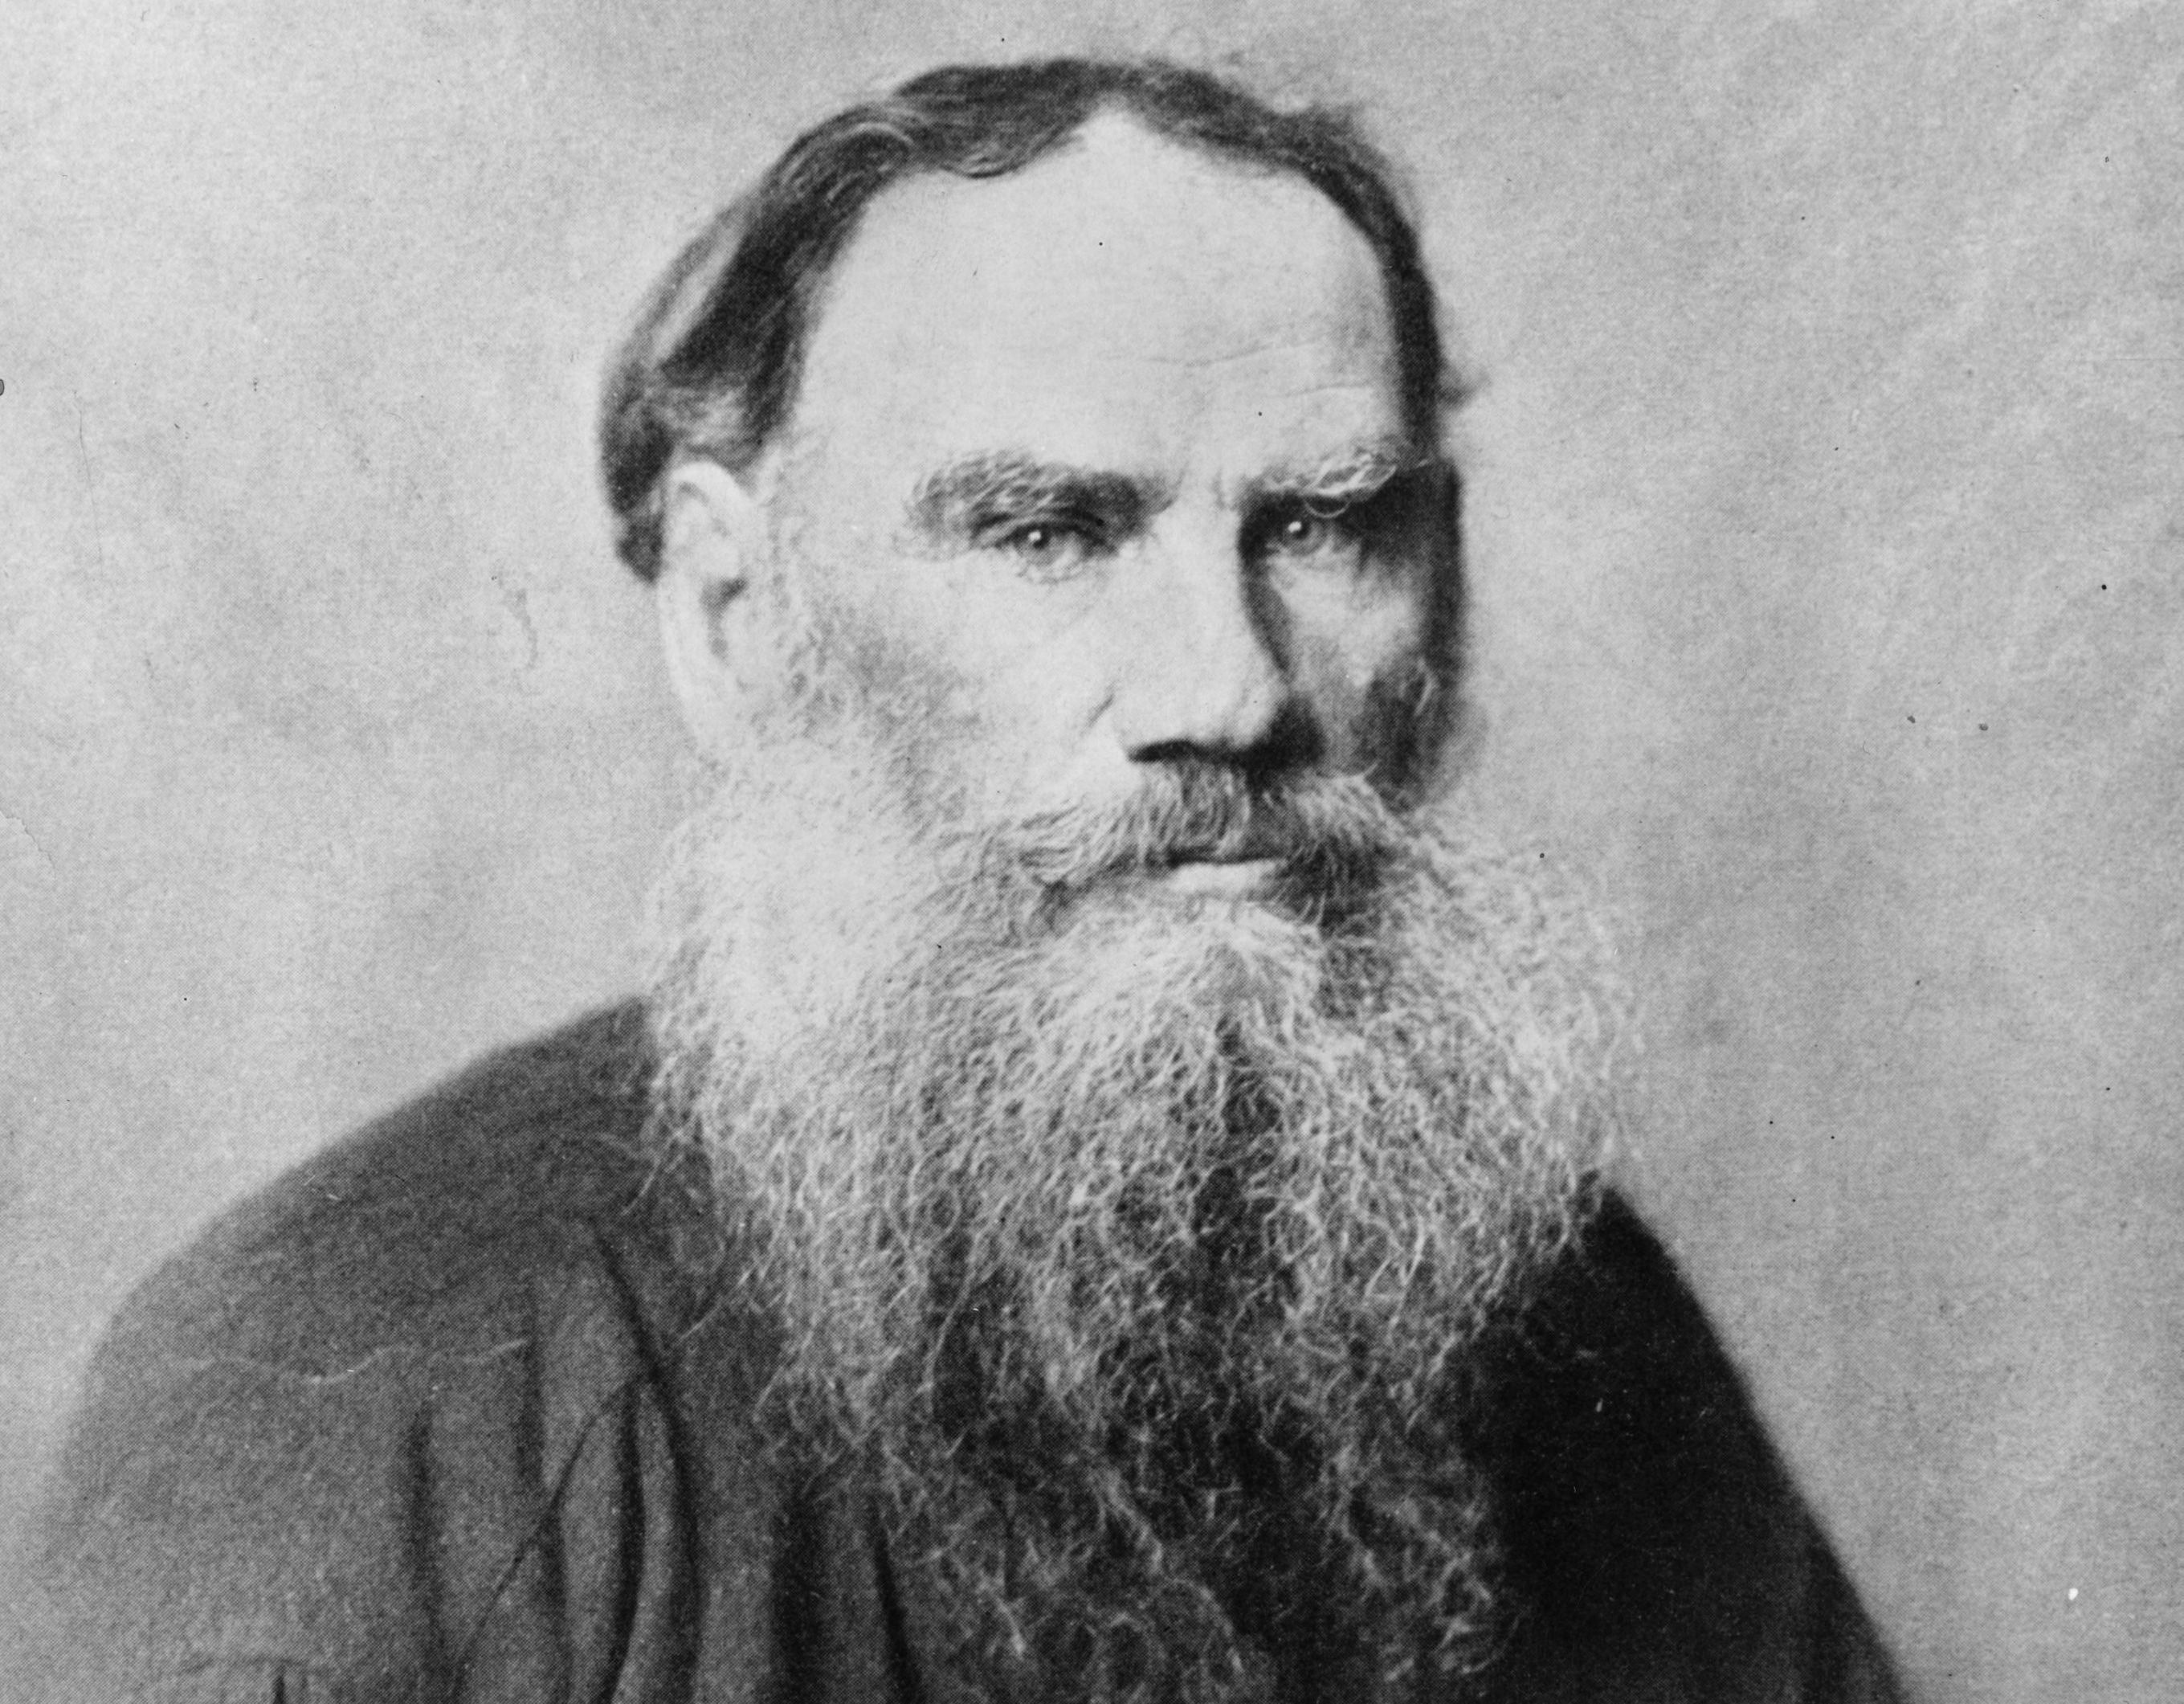 Leo Tolstoy, Russian Writer - Best Russian Authors